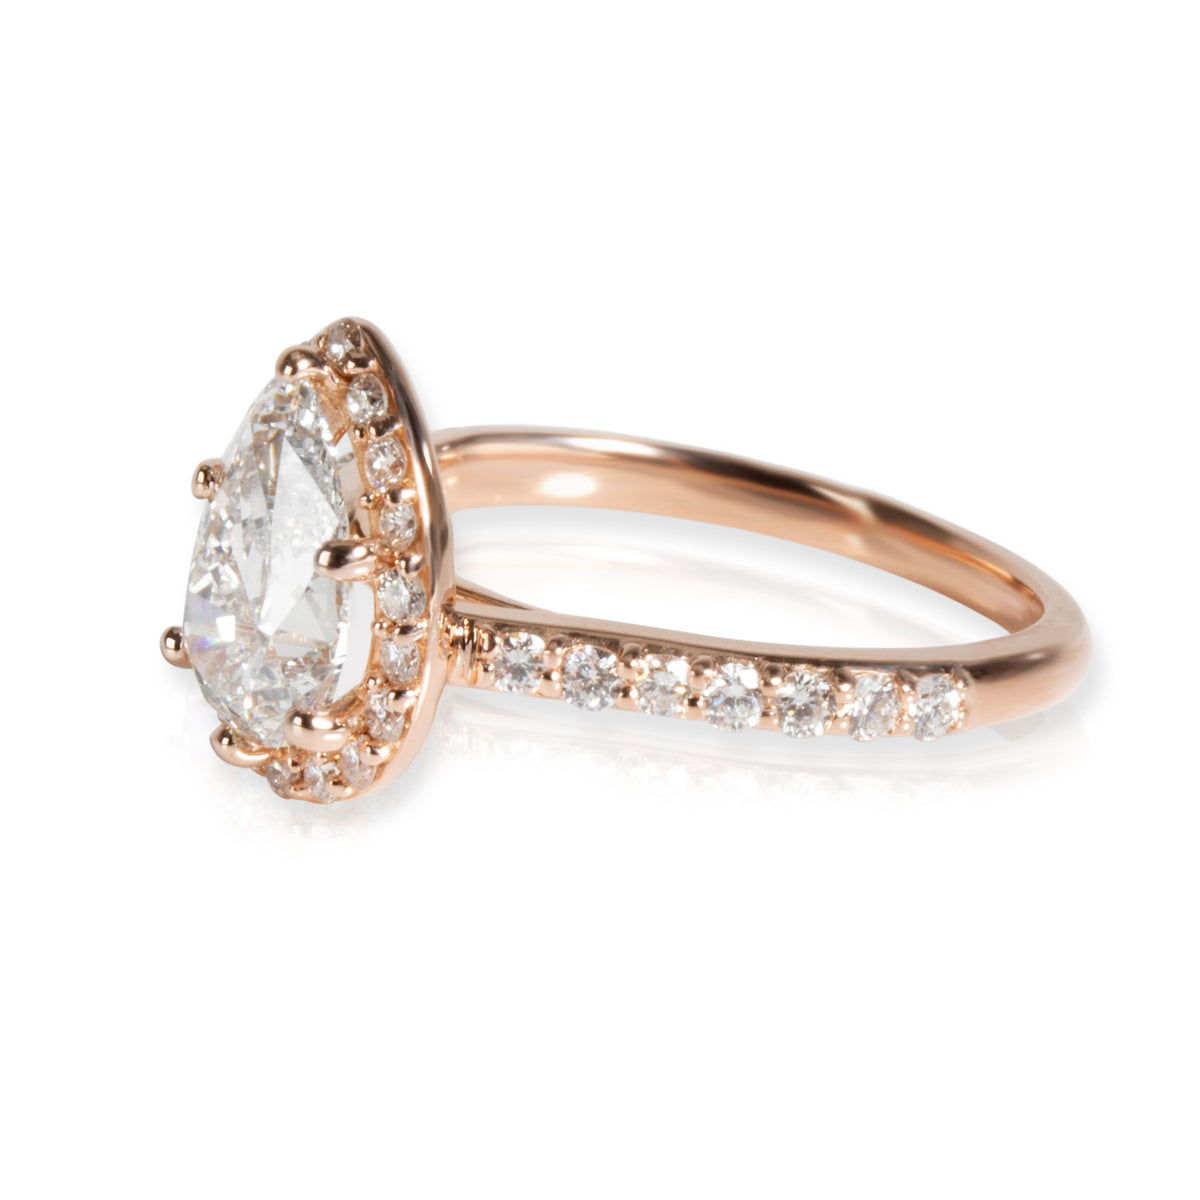 Brilliant Earth Pear Diamond Engagement Ring in 14K Rose Gold GIA F SI1 1.6 CTW